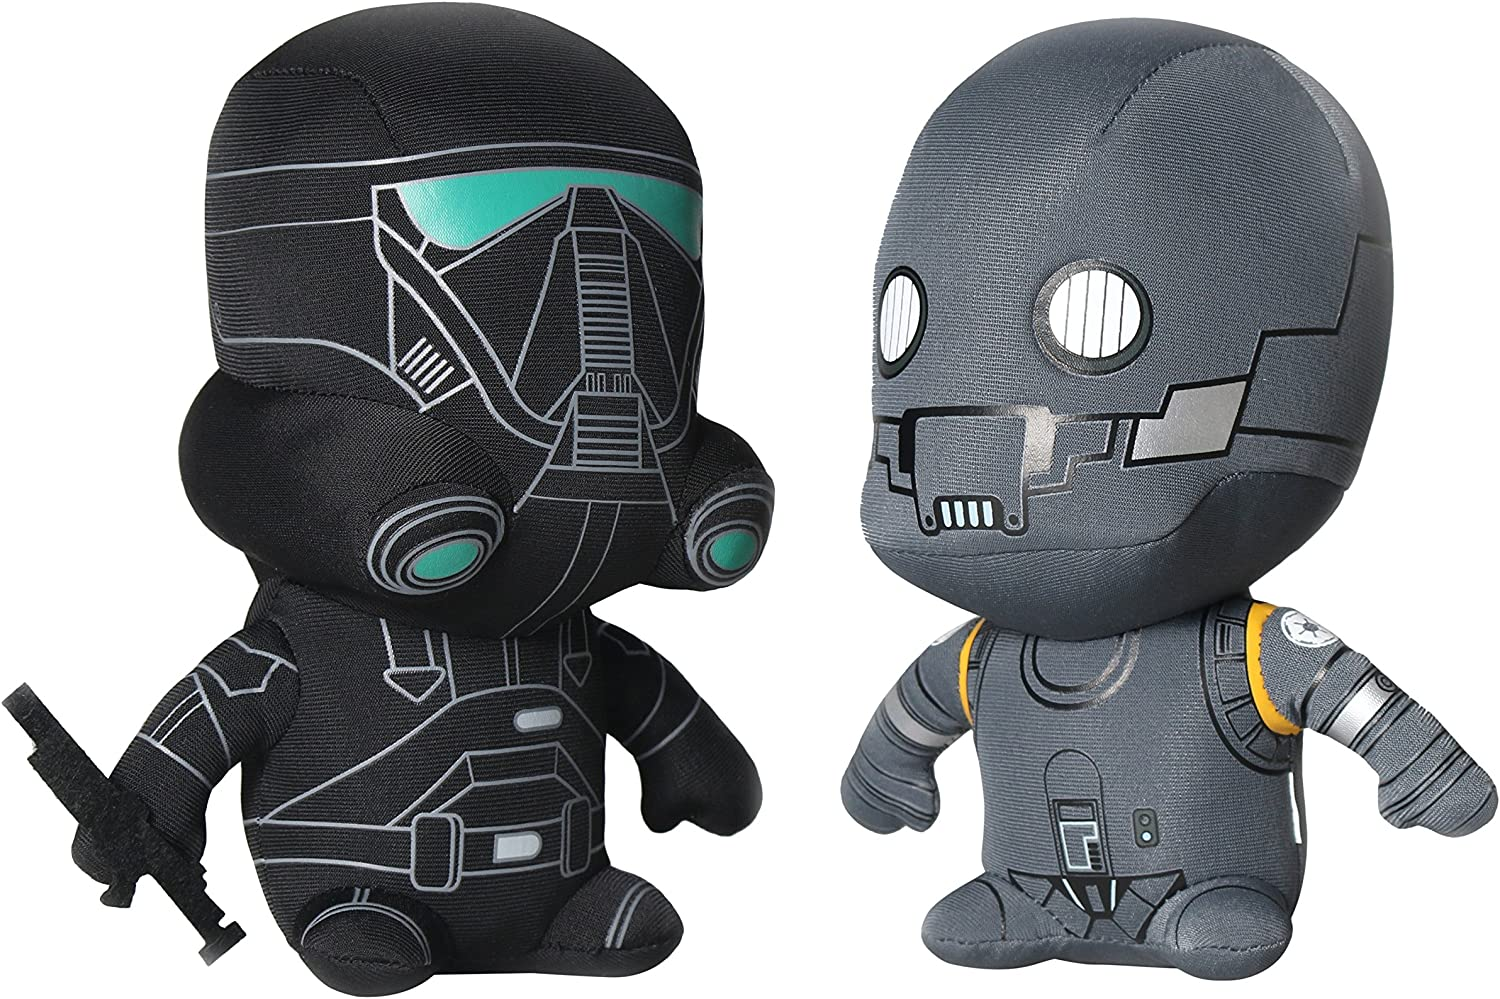 Amazon Com Comic Images Super Deformed Rogue One K 2 So Death Trooper Plush Toy In Polybag 2 Pack Toys Games